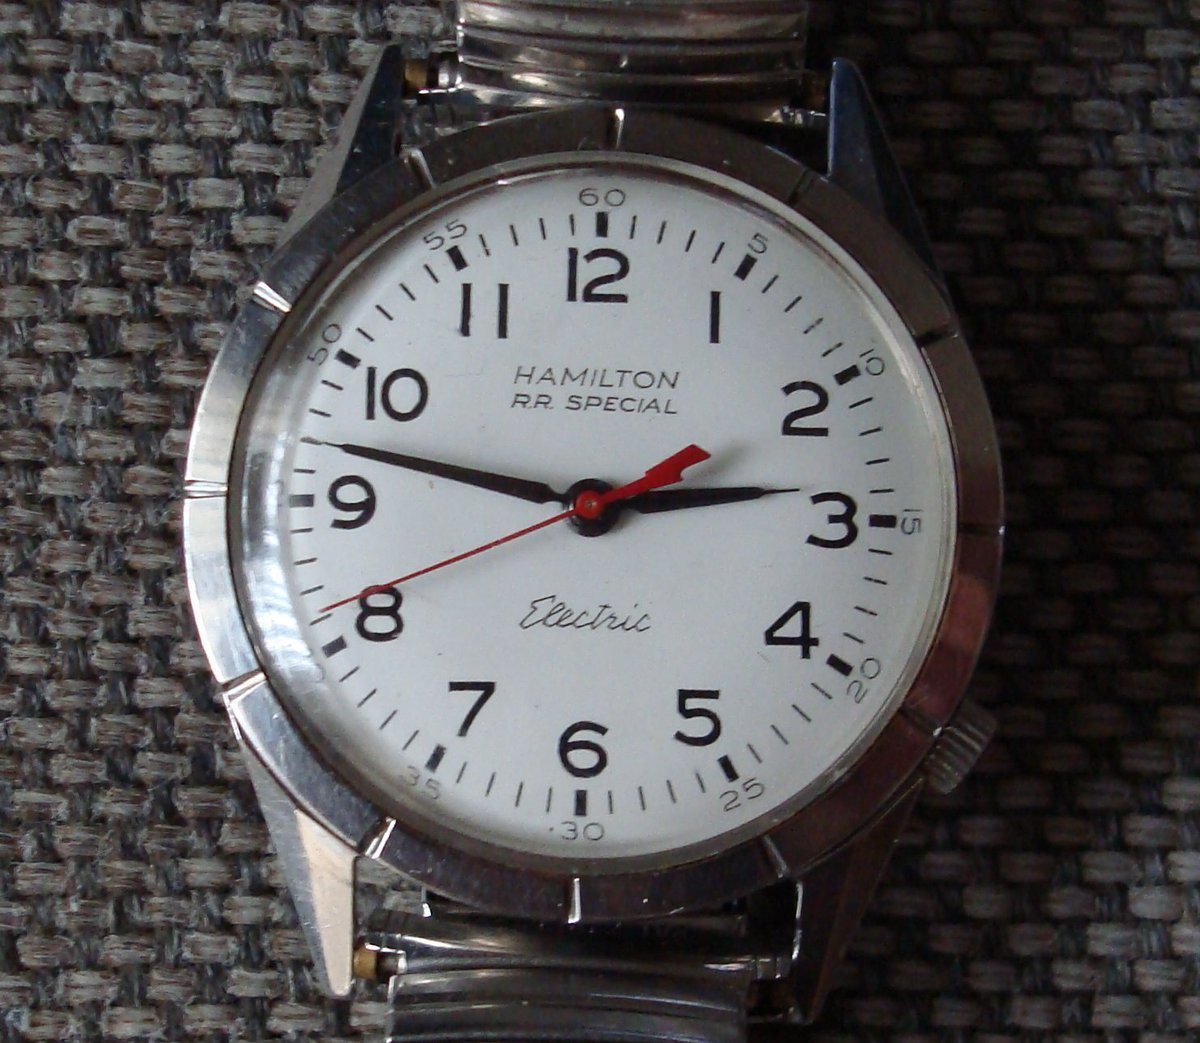 On This Day In 1957 The Hamilton Watch Company Introduced First Electric